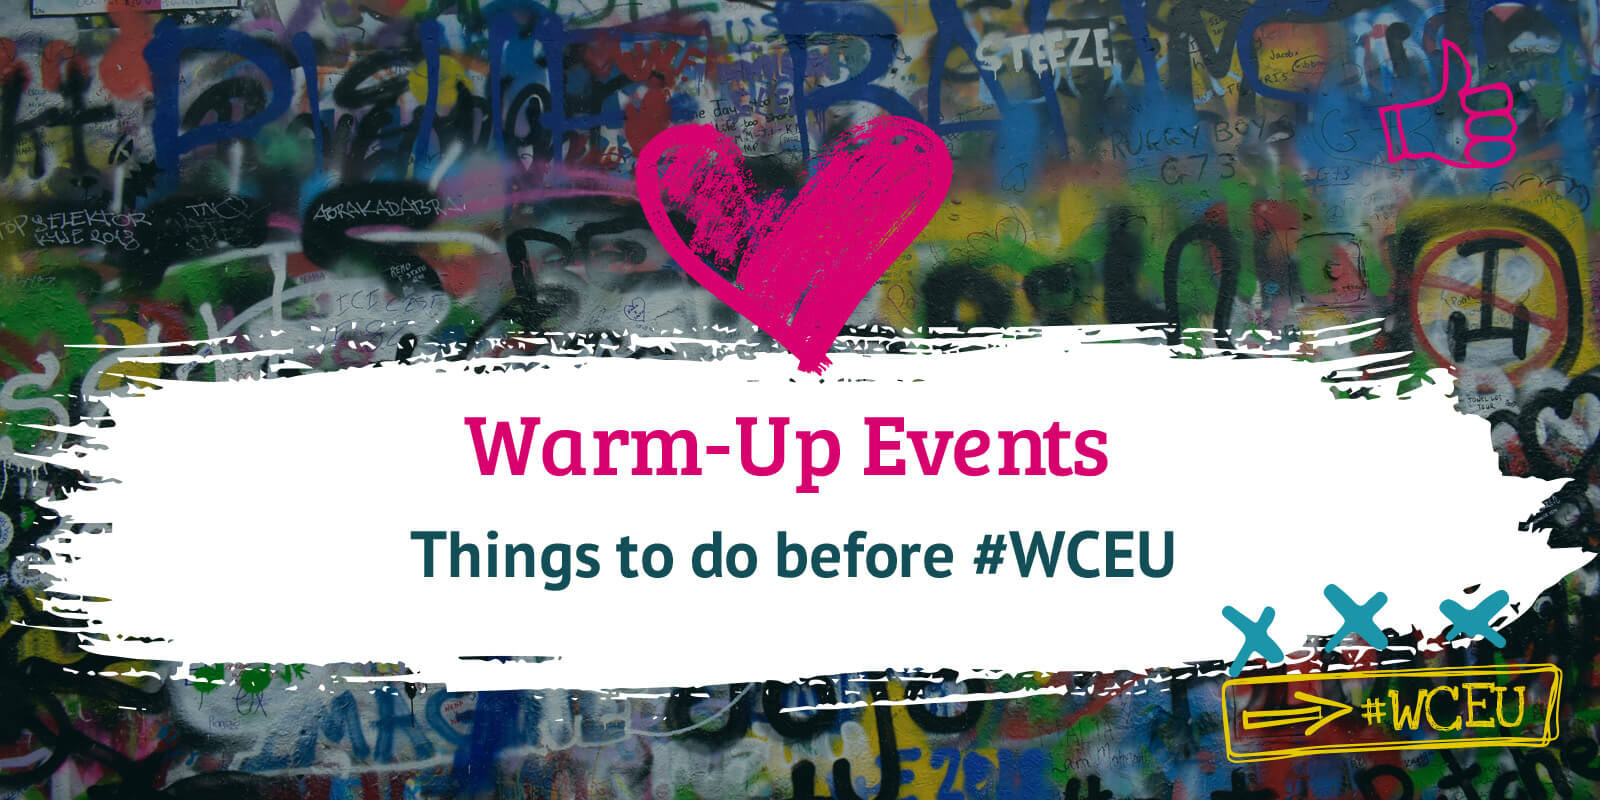 warm-up events